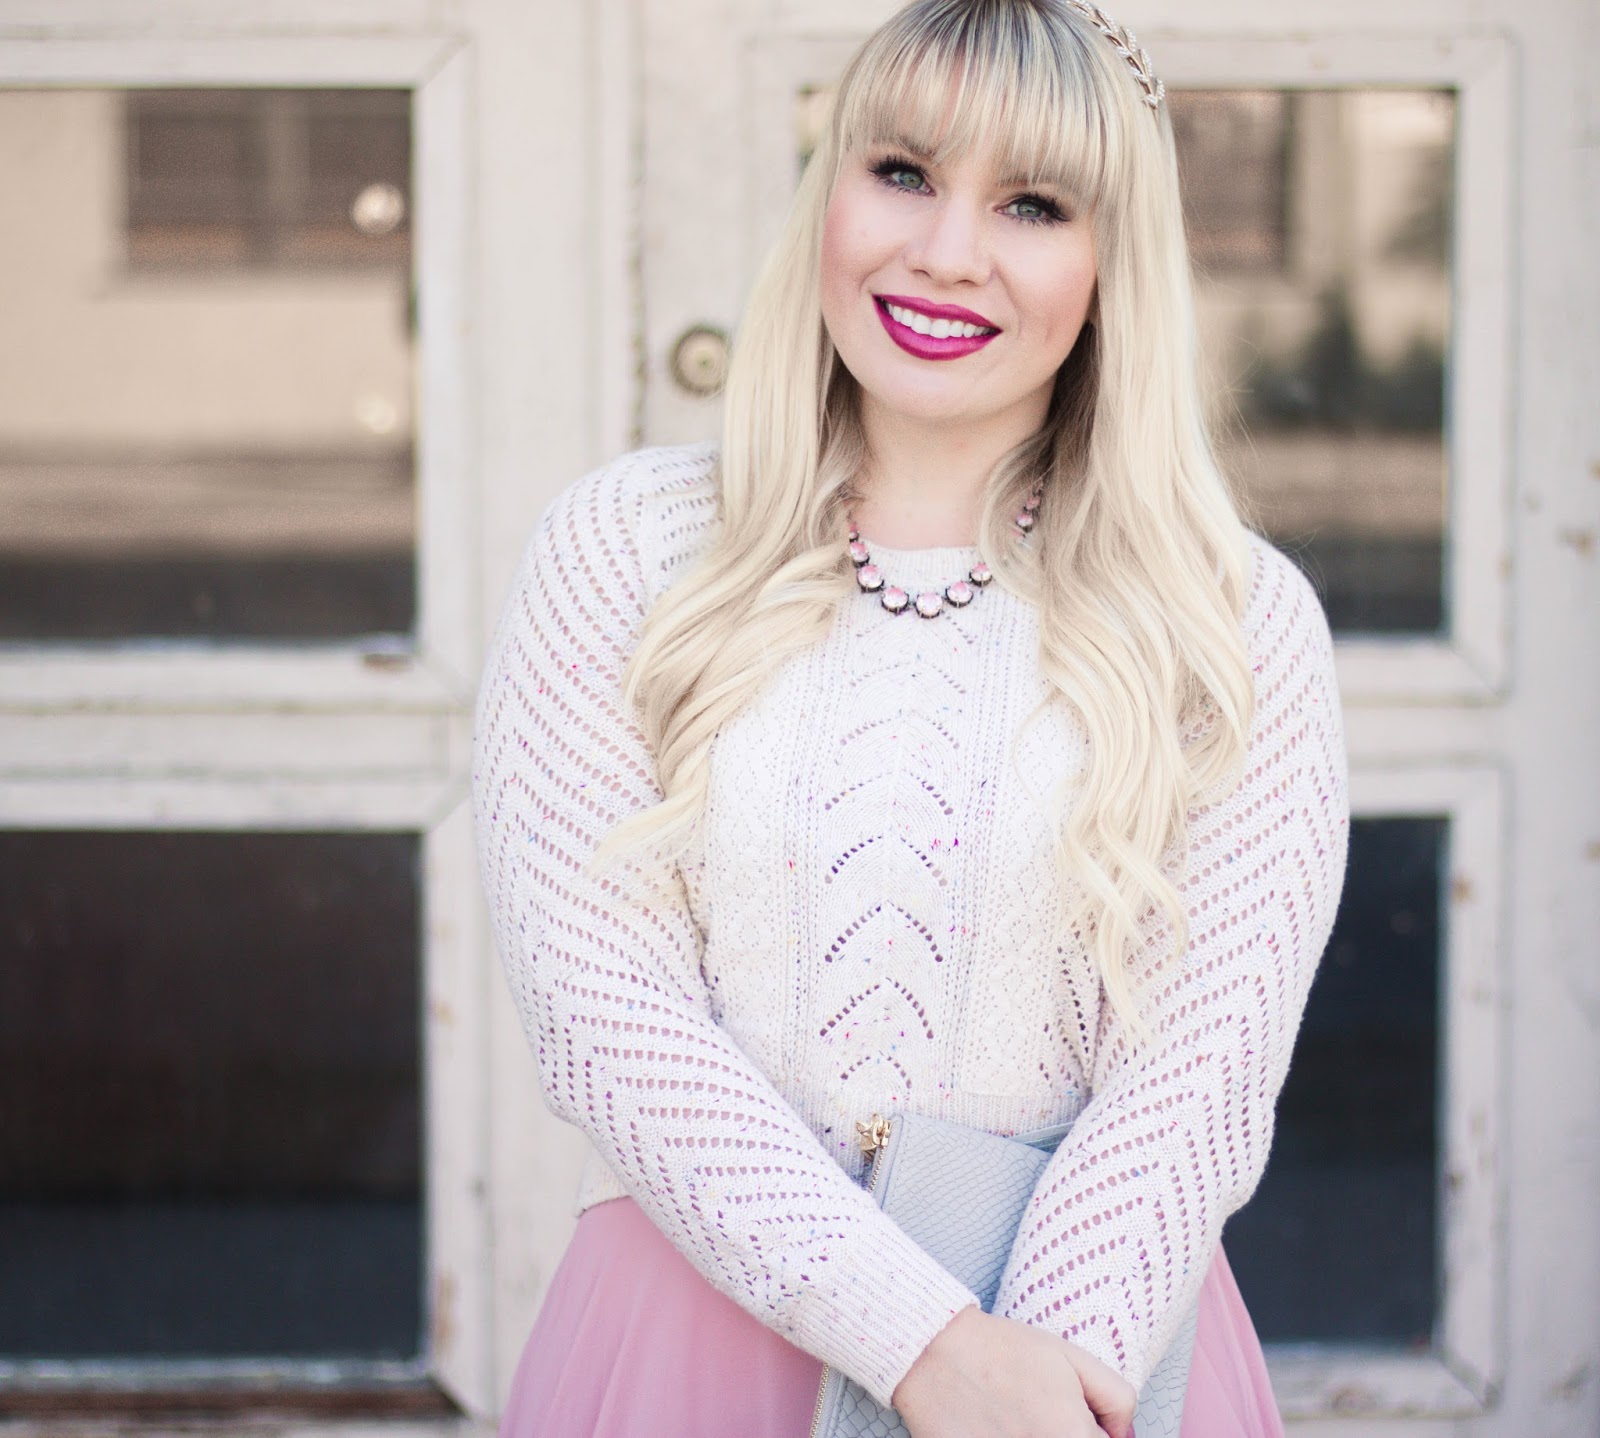 A Day in the Life of a Fashion Blogger by popular California fashion blogger Lizzie in Lace